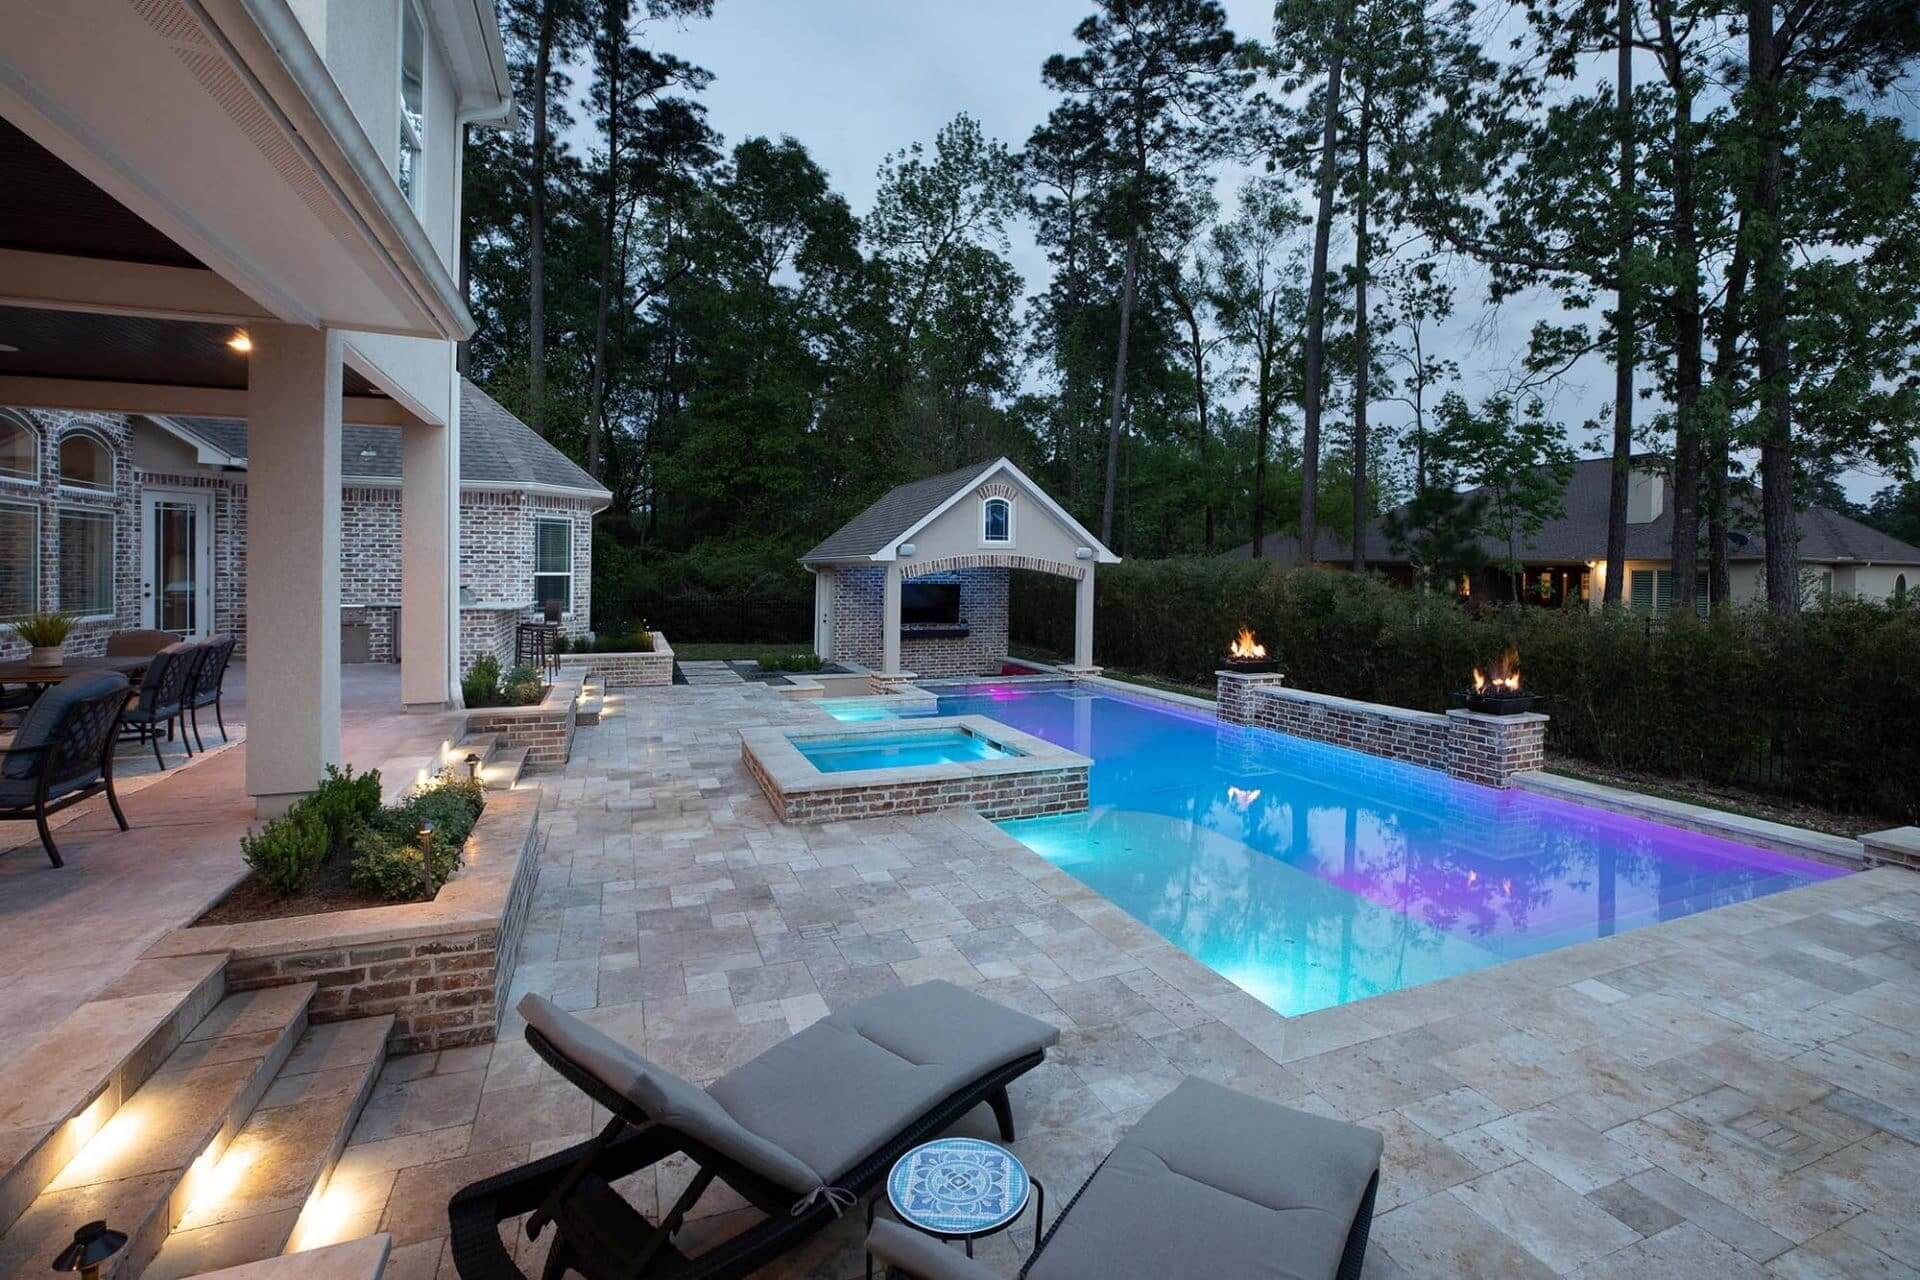 travertine patio, pool, spa and covered outdoor living space